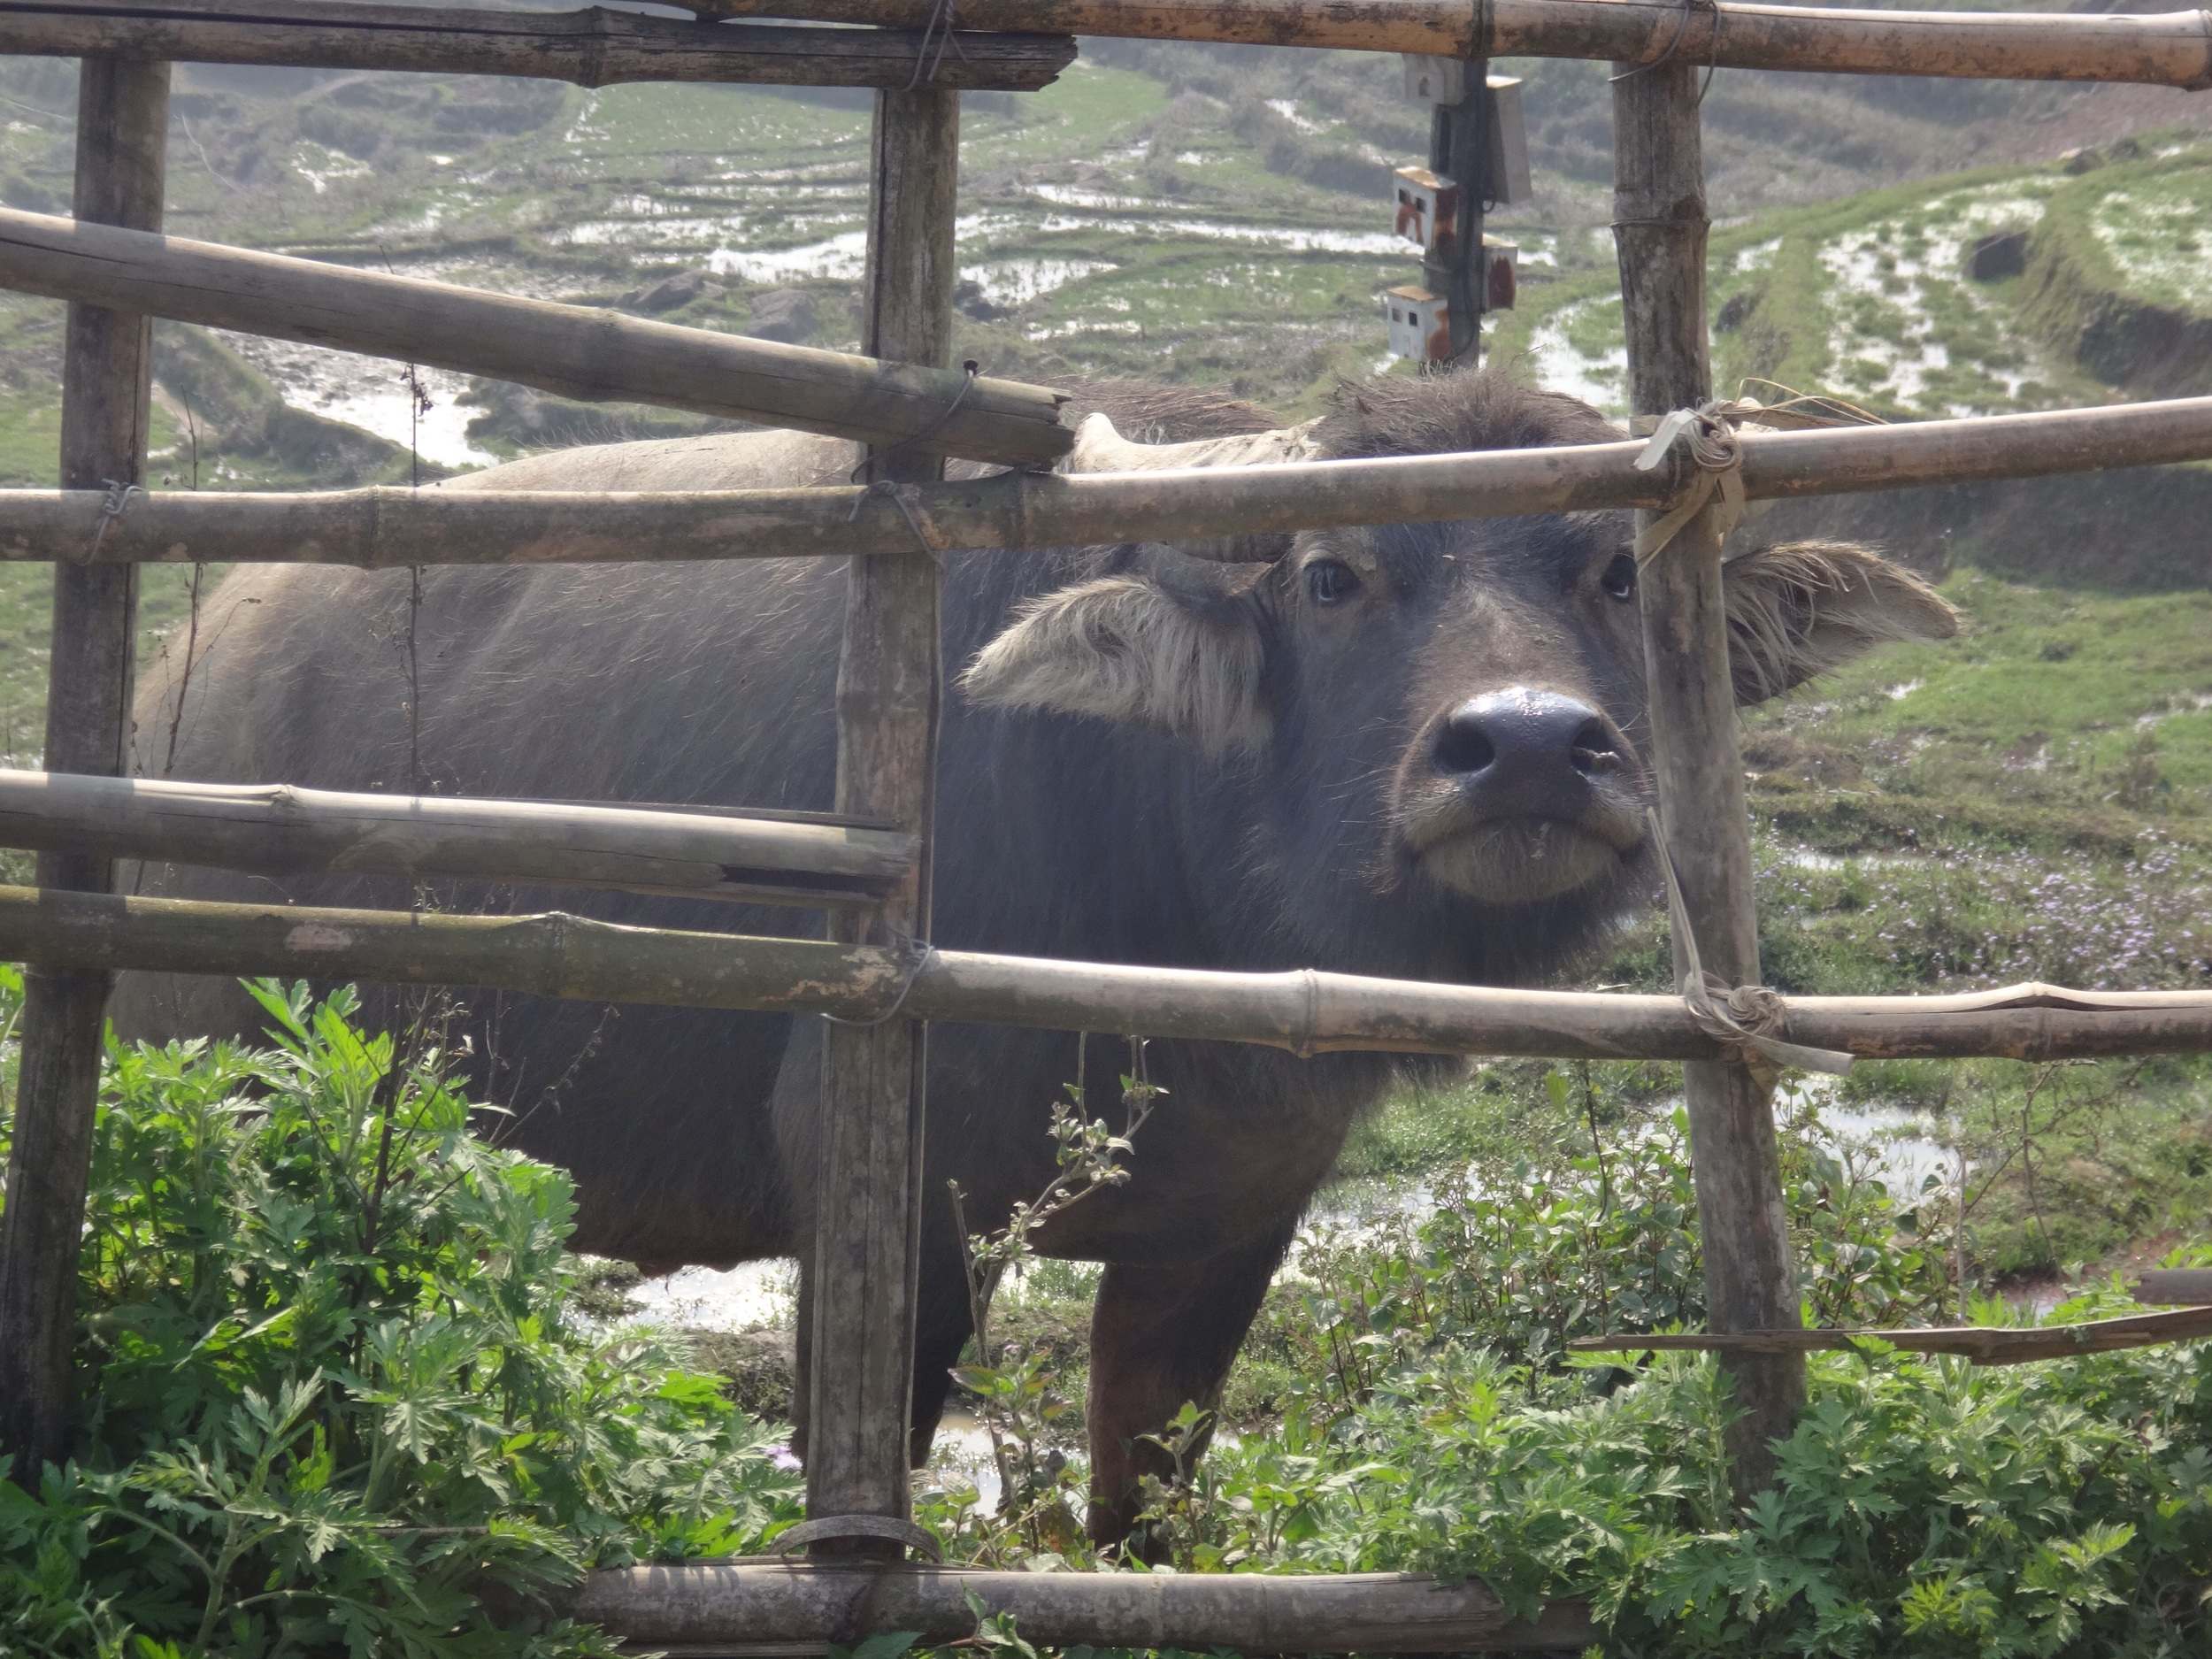 Water buffalo in the right side of a fence ... they can be unpredictable and charge.